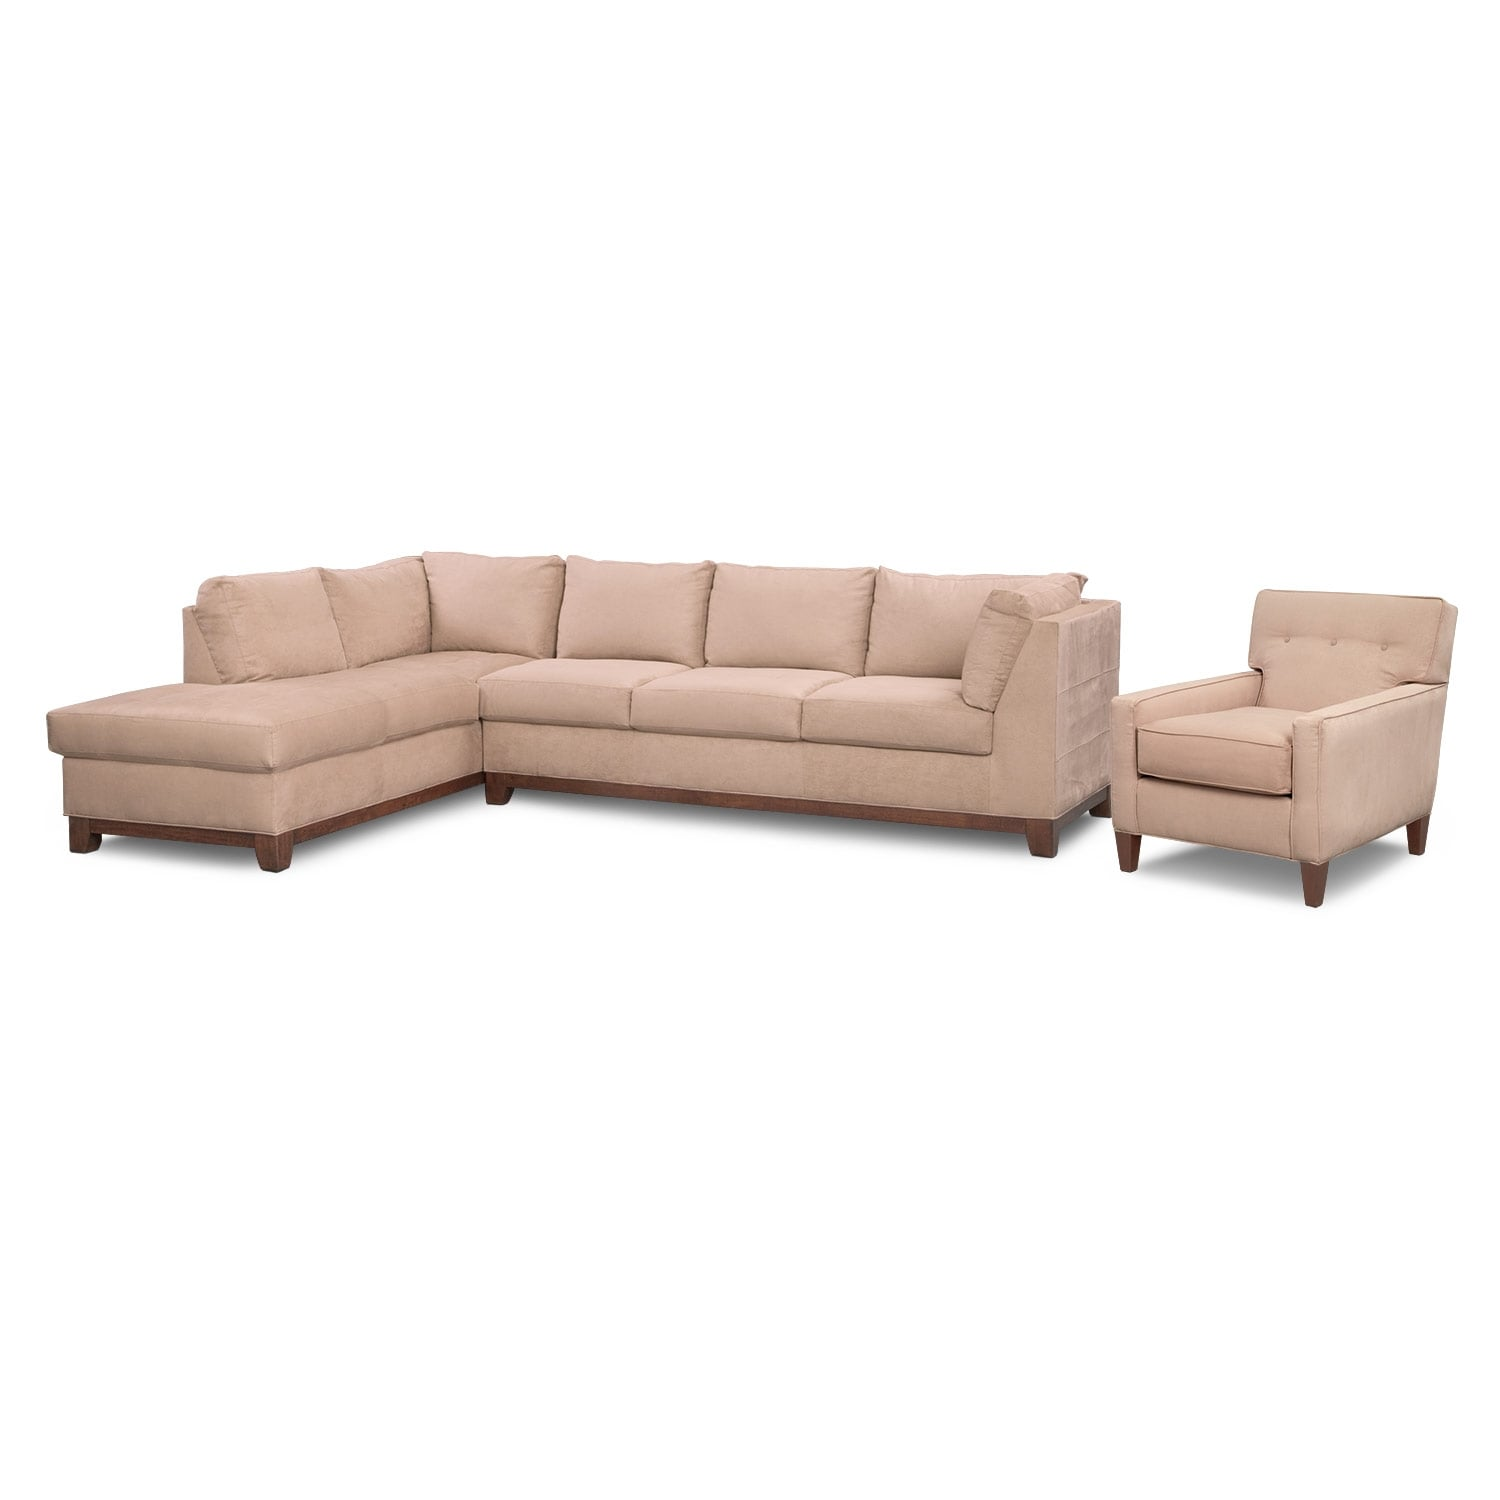 Living Room Furniture - Soho 2-Piece Left-Facing Sectional and Chair - Cobblestone